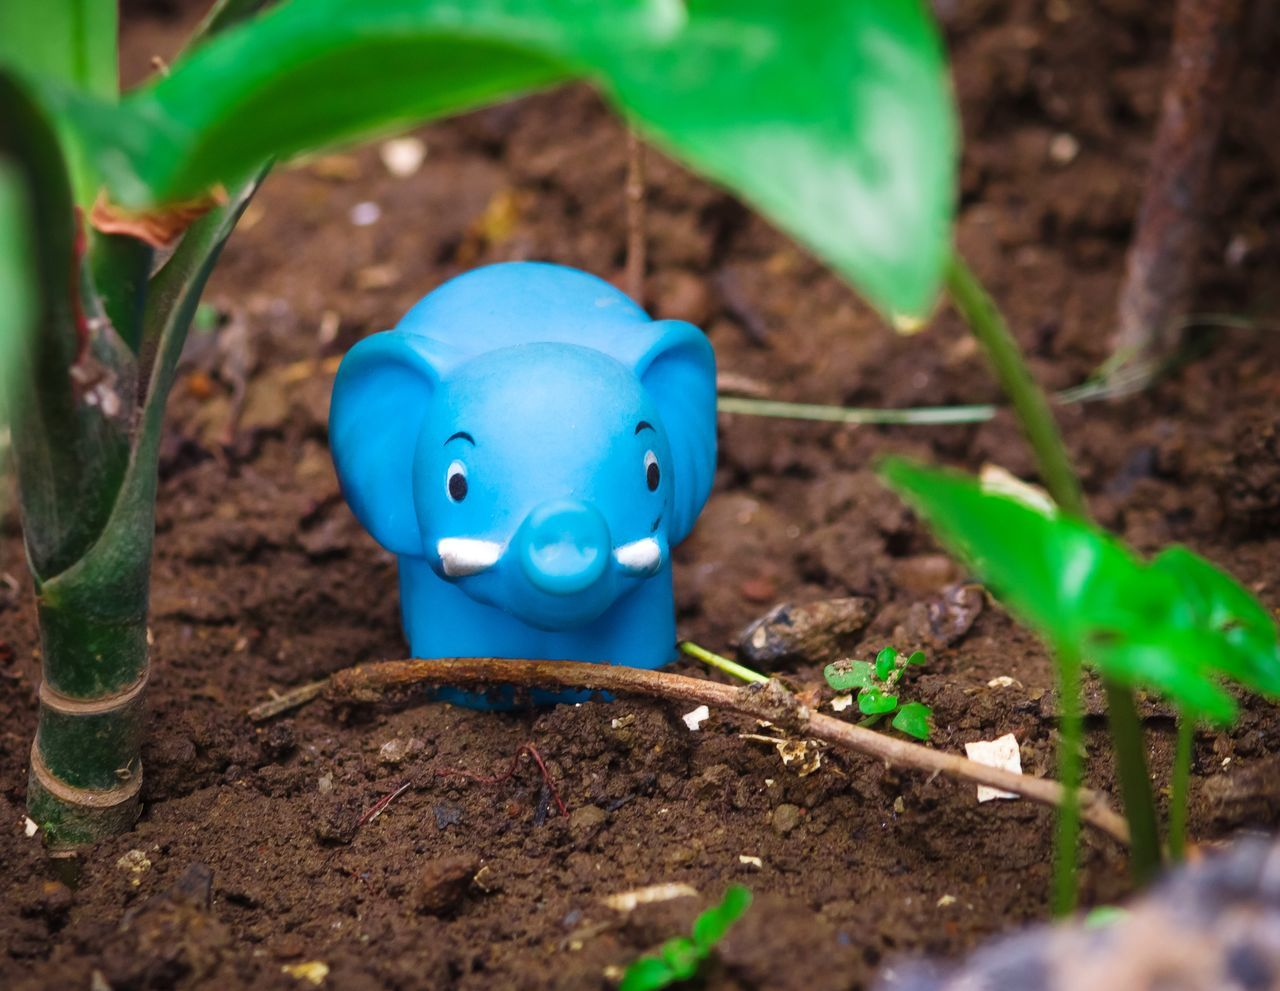 HIGH ANGLE VIEW OF SMALL BLUE TOY ON FIELD